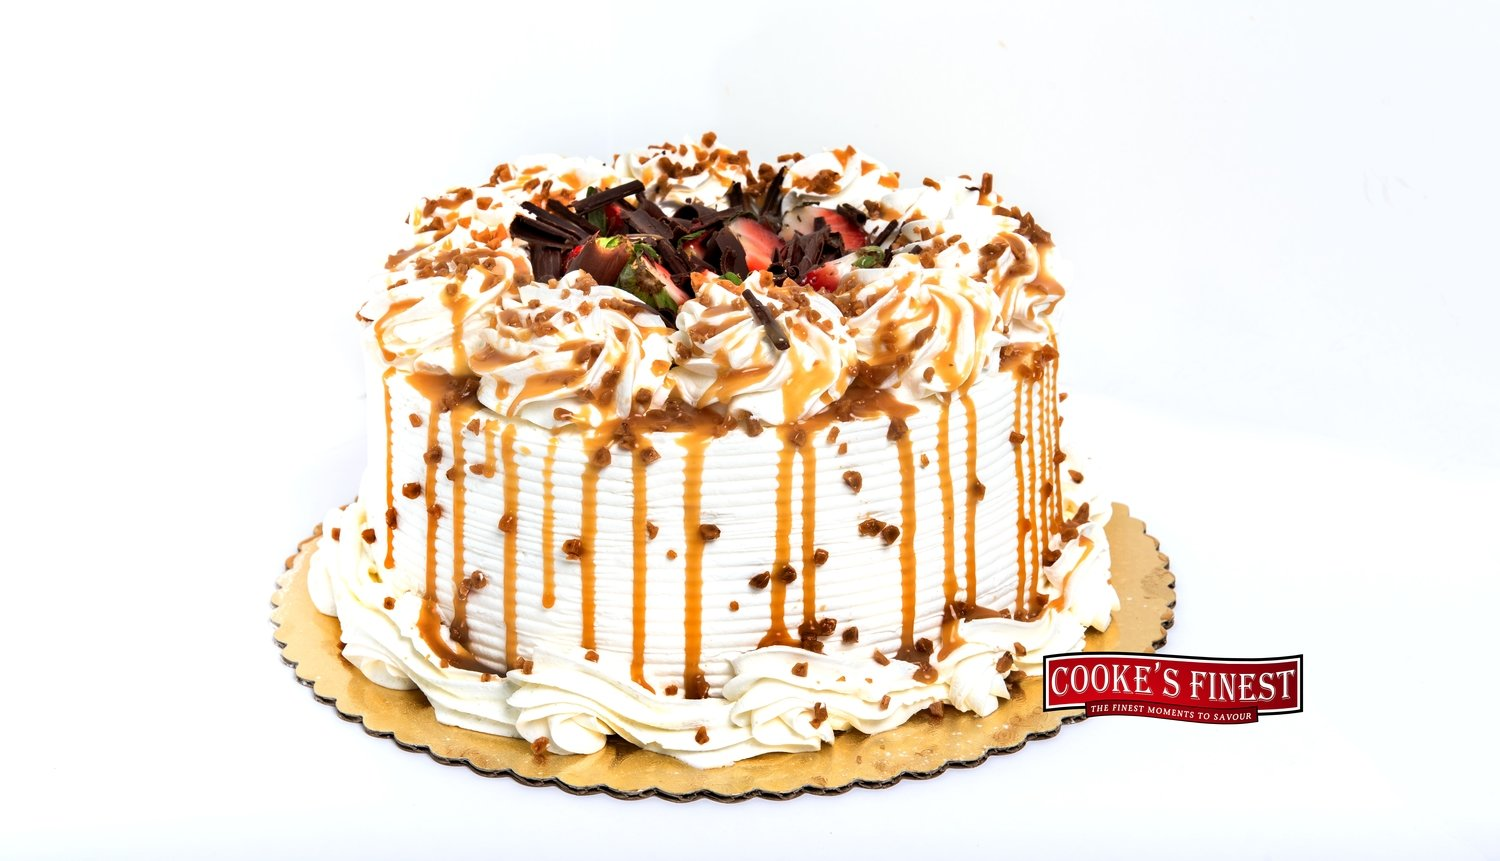 Better Sex Cake Cheesecake - Cookes Finest